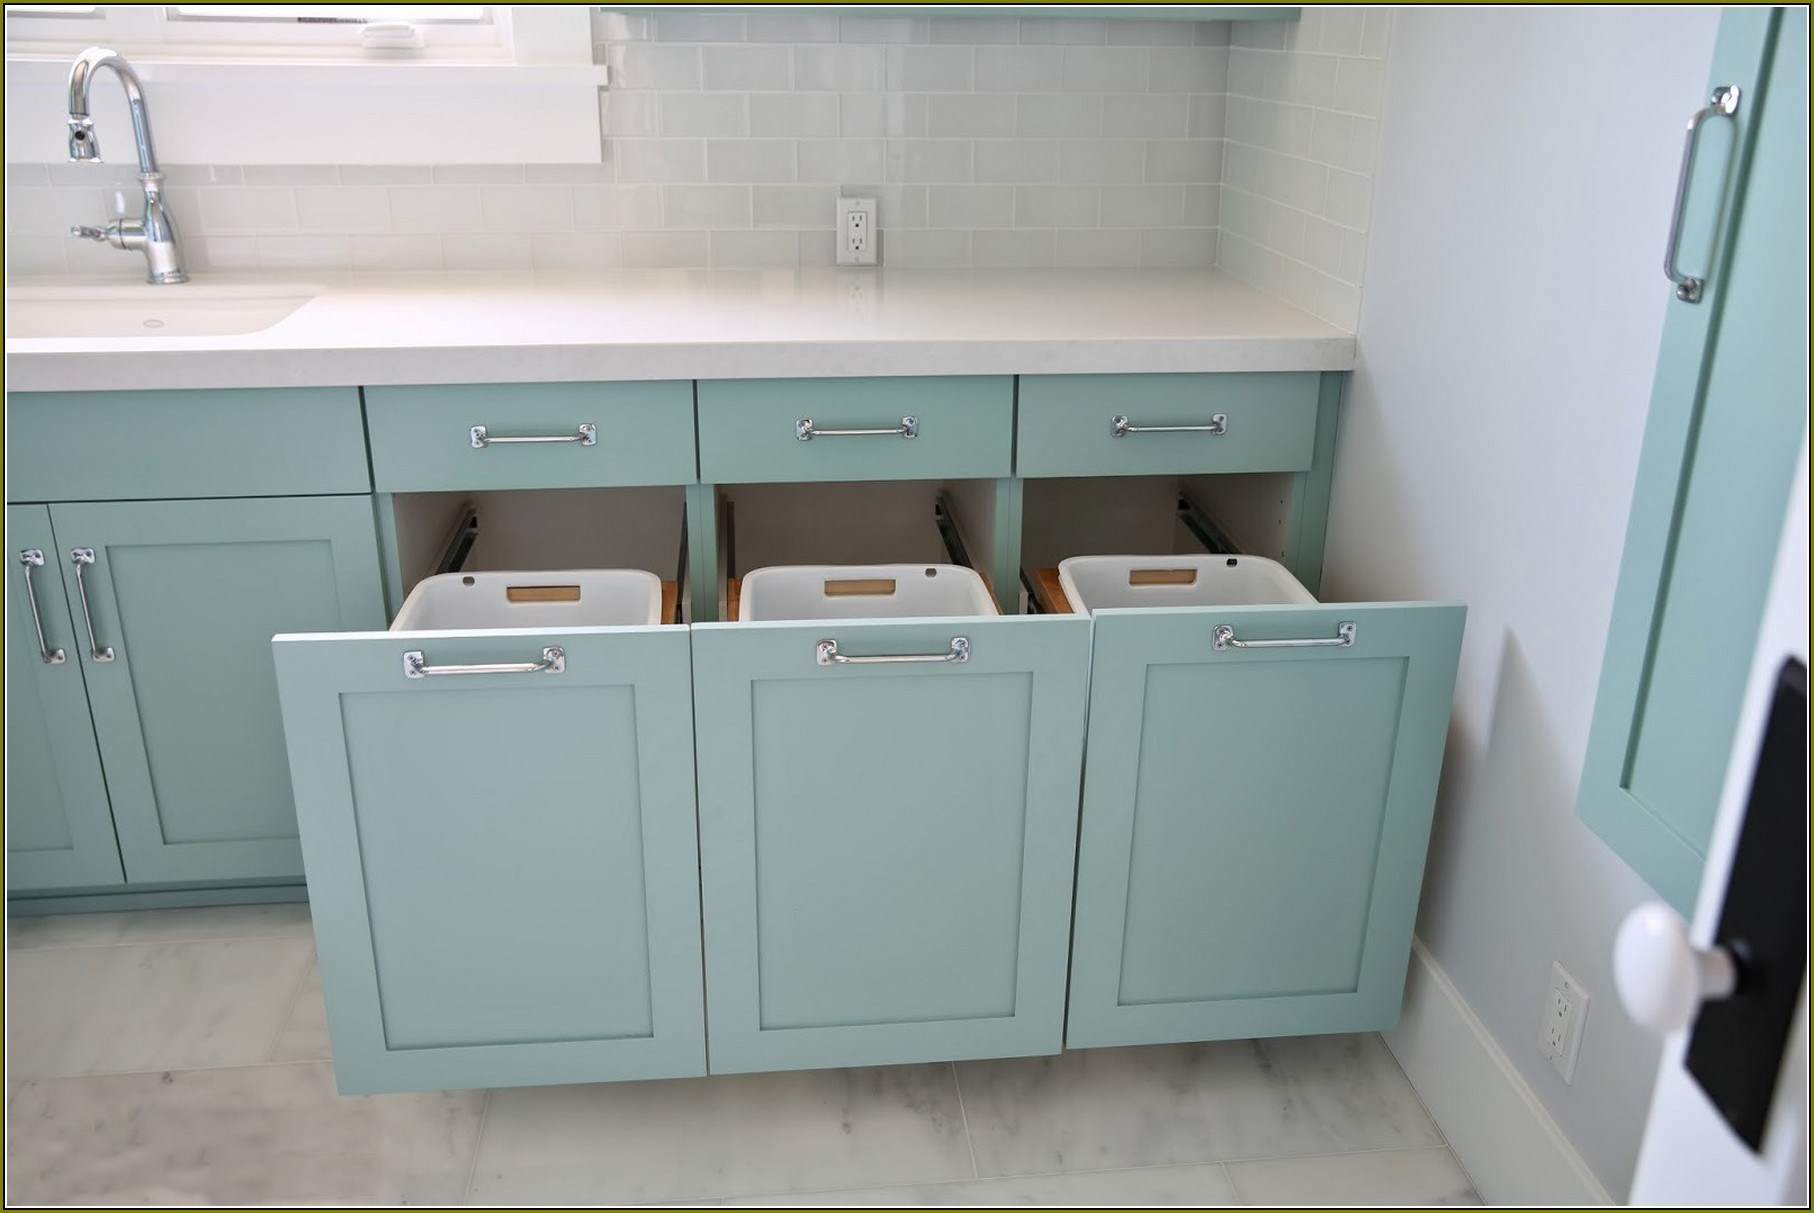 Built In And Hidden Laundry Hamper Inside Cabinet